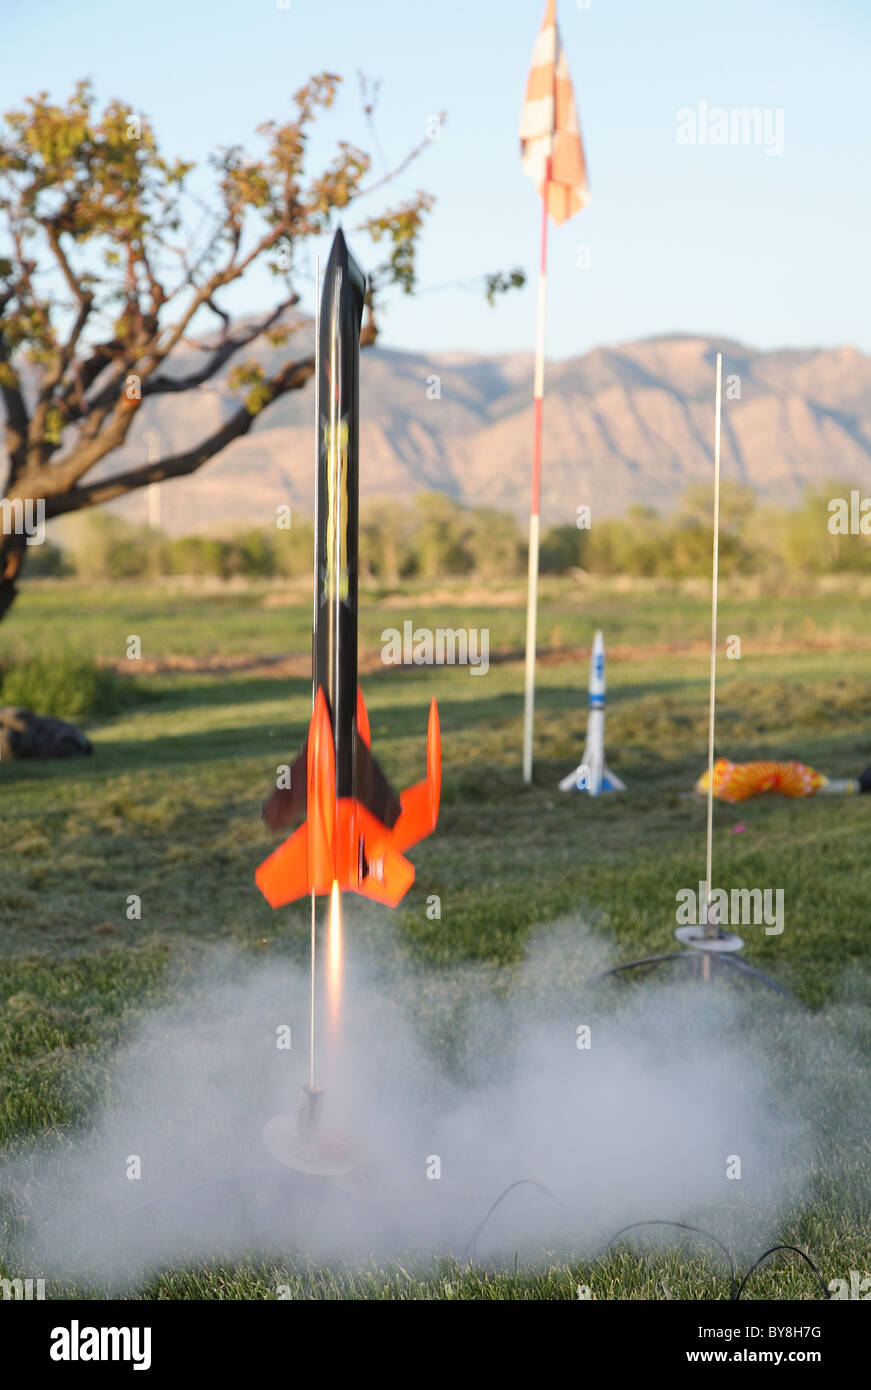 colorful model rocket launching off grass - Stock Image